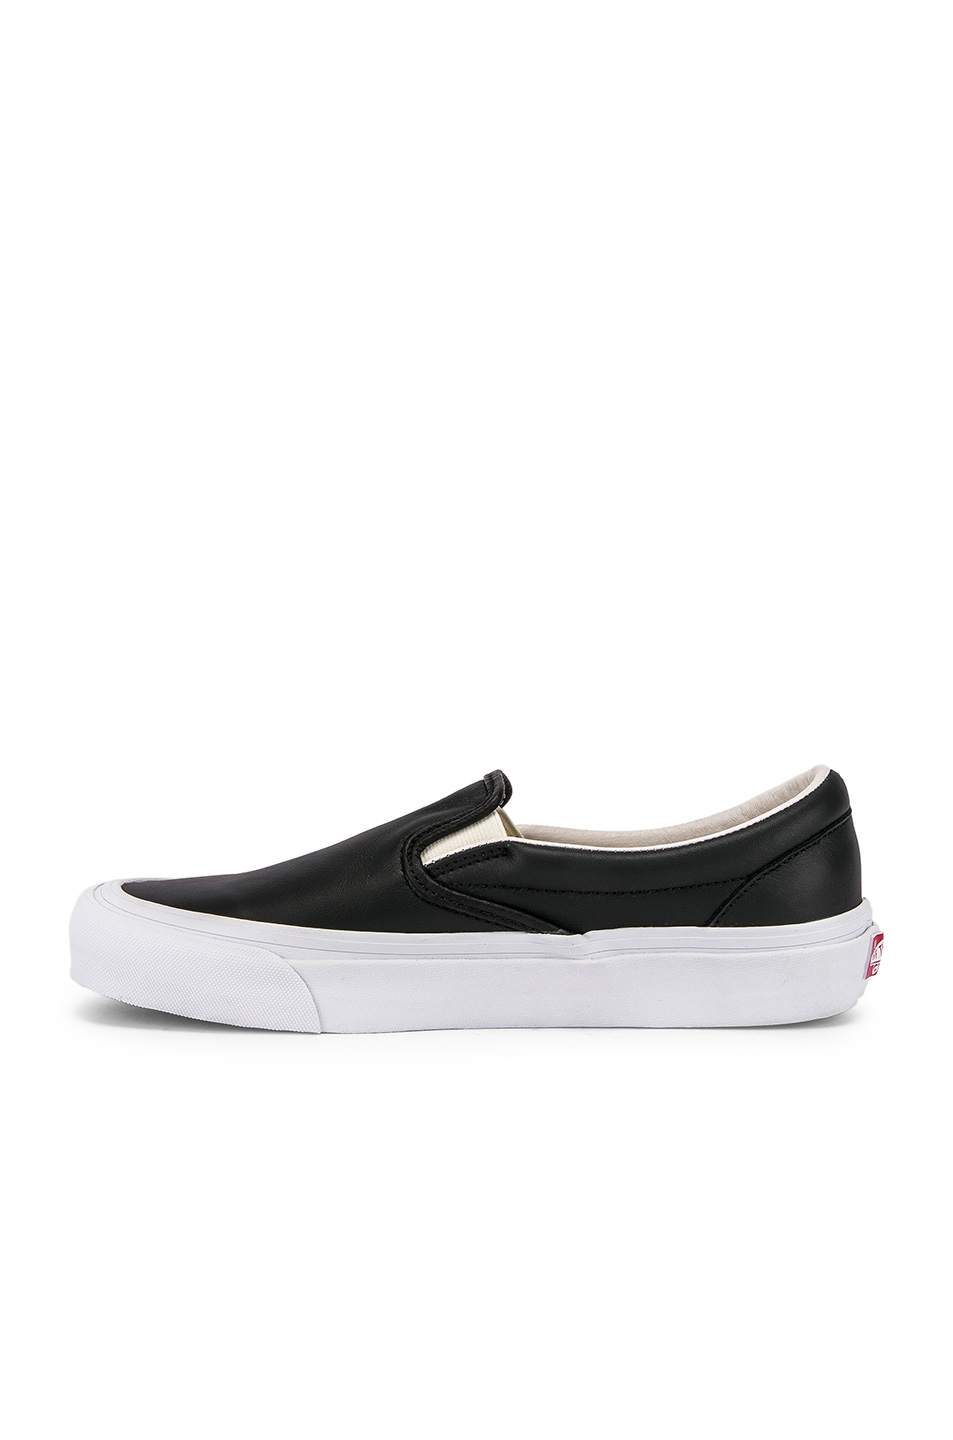 Image 5 of Vans Vault OG Classic Slip-On LX in Black